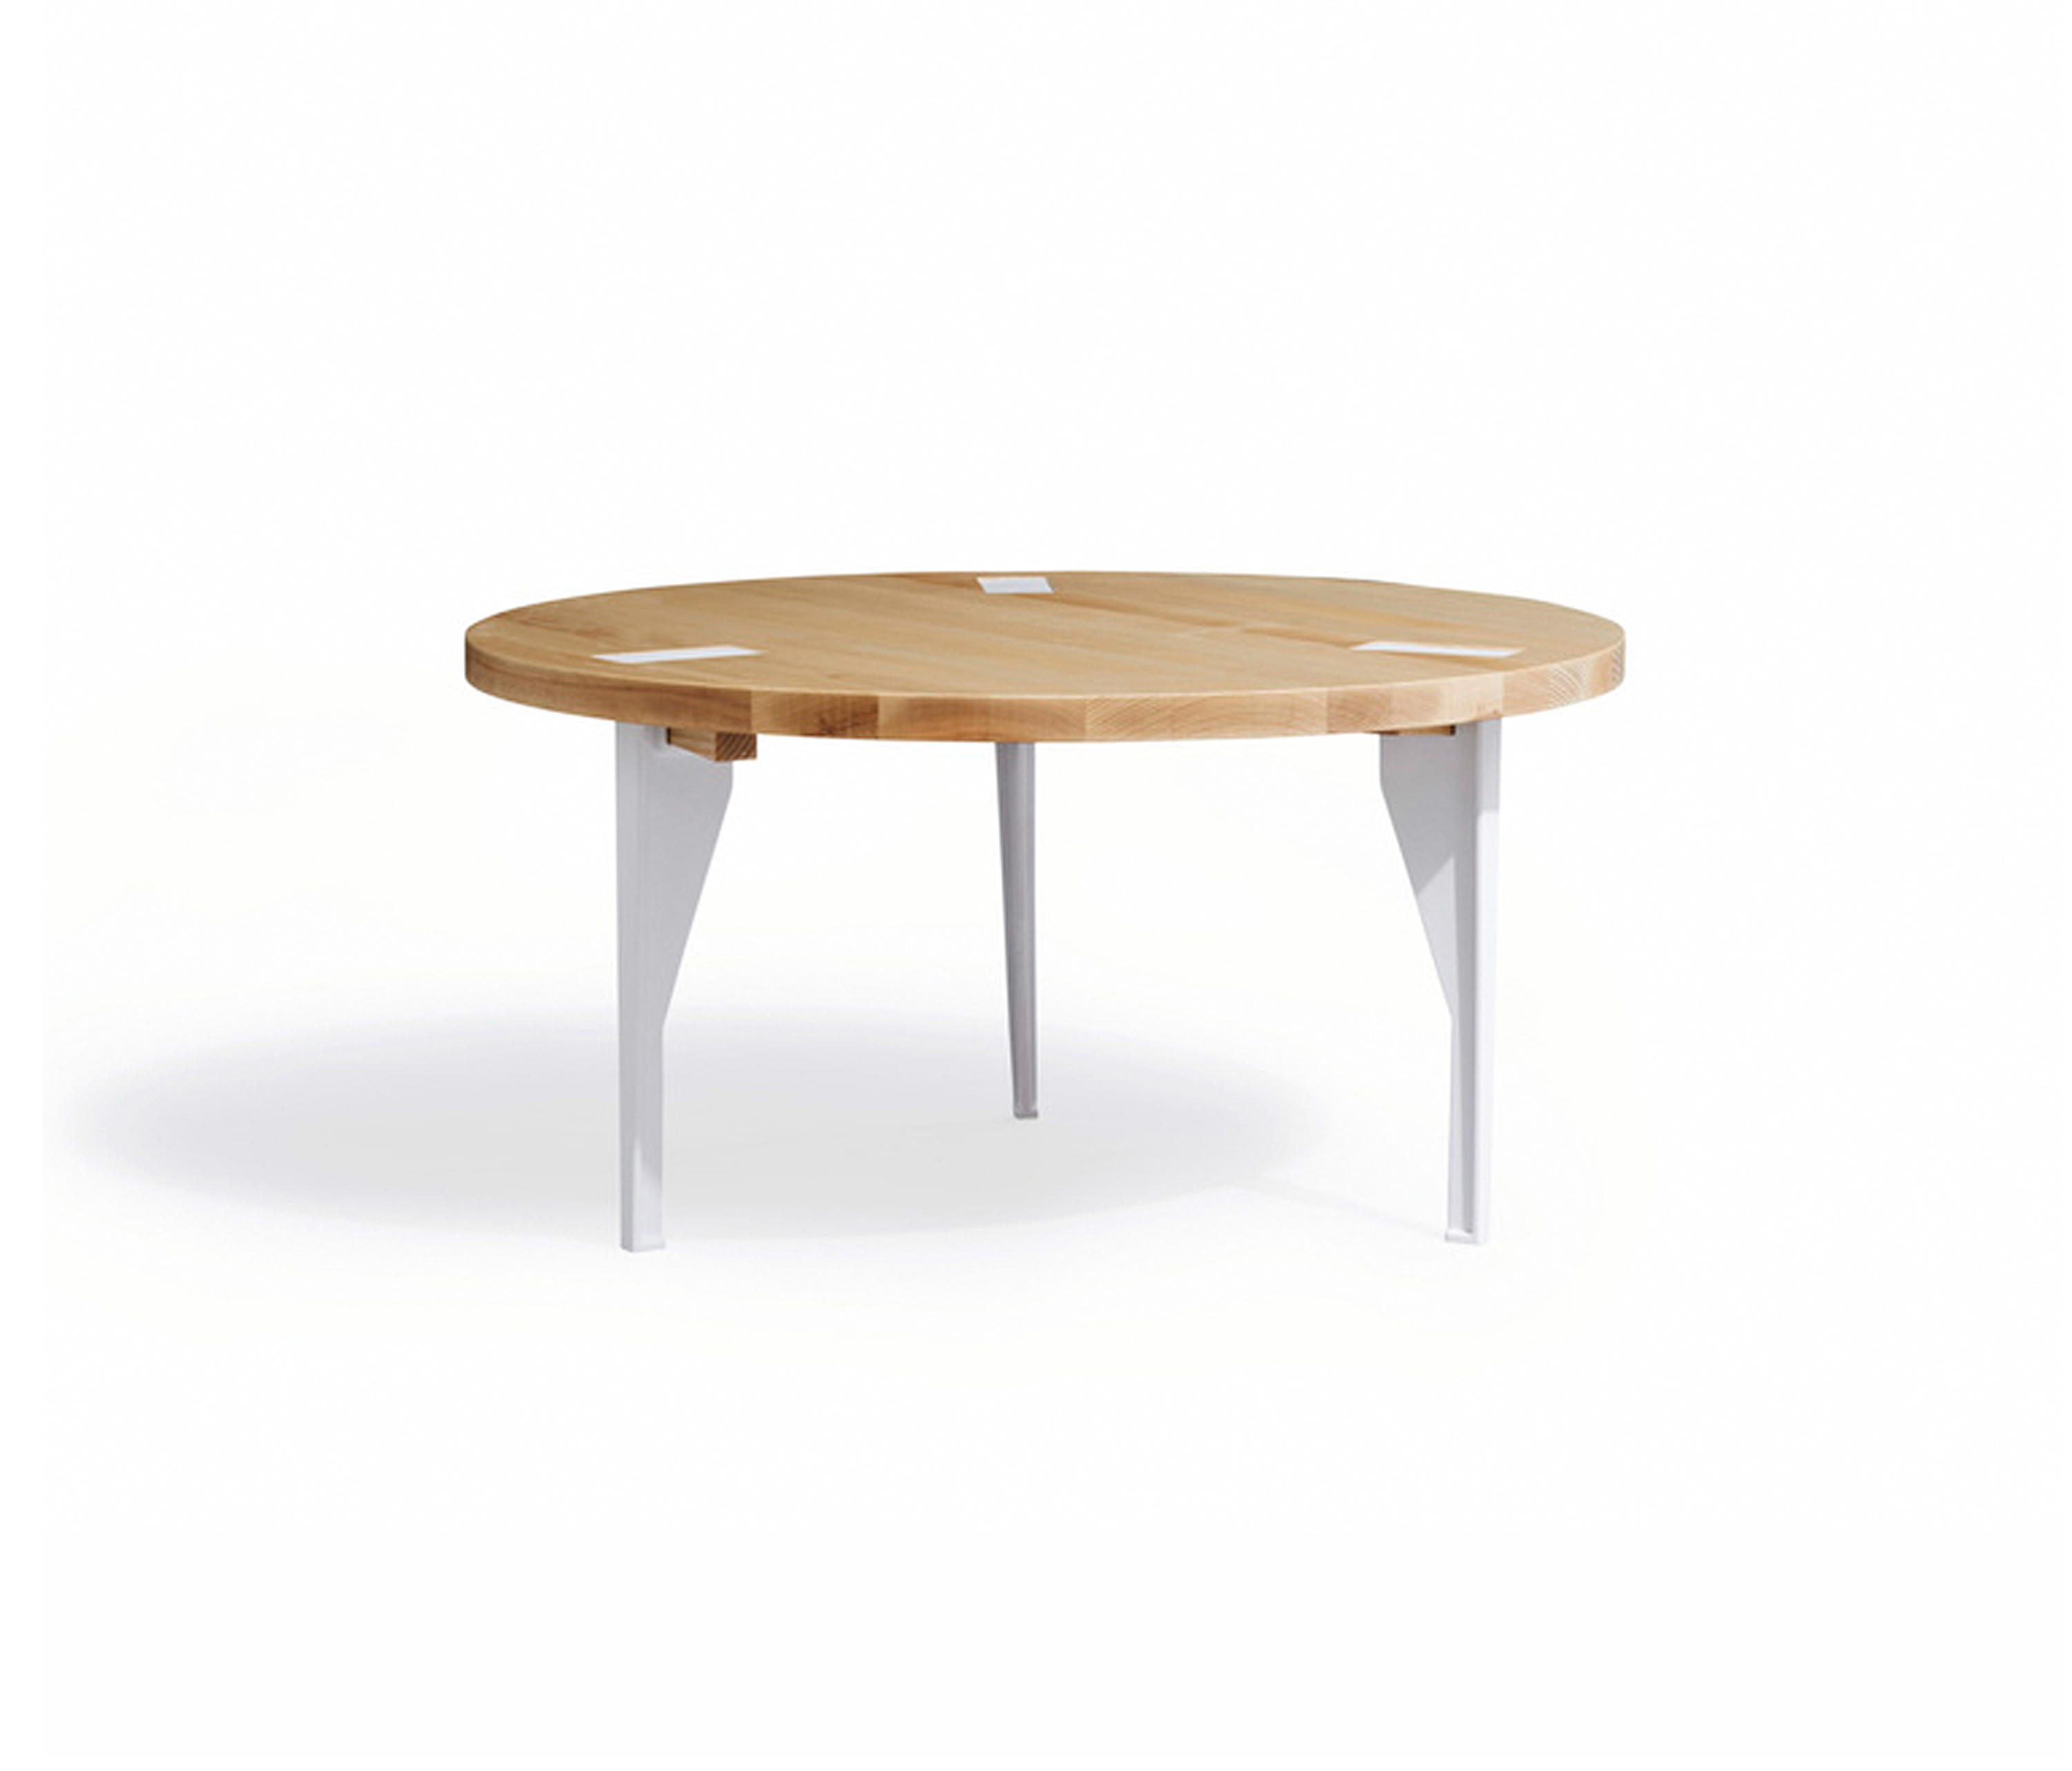 Keel coffee table pine round lounge tables from new works keel coffee table pine round by new works lounge tables geotapseo Image collections